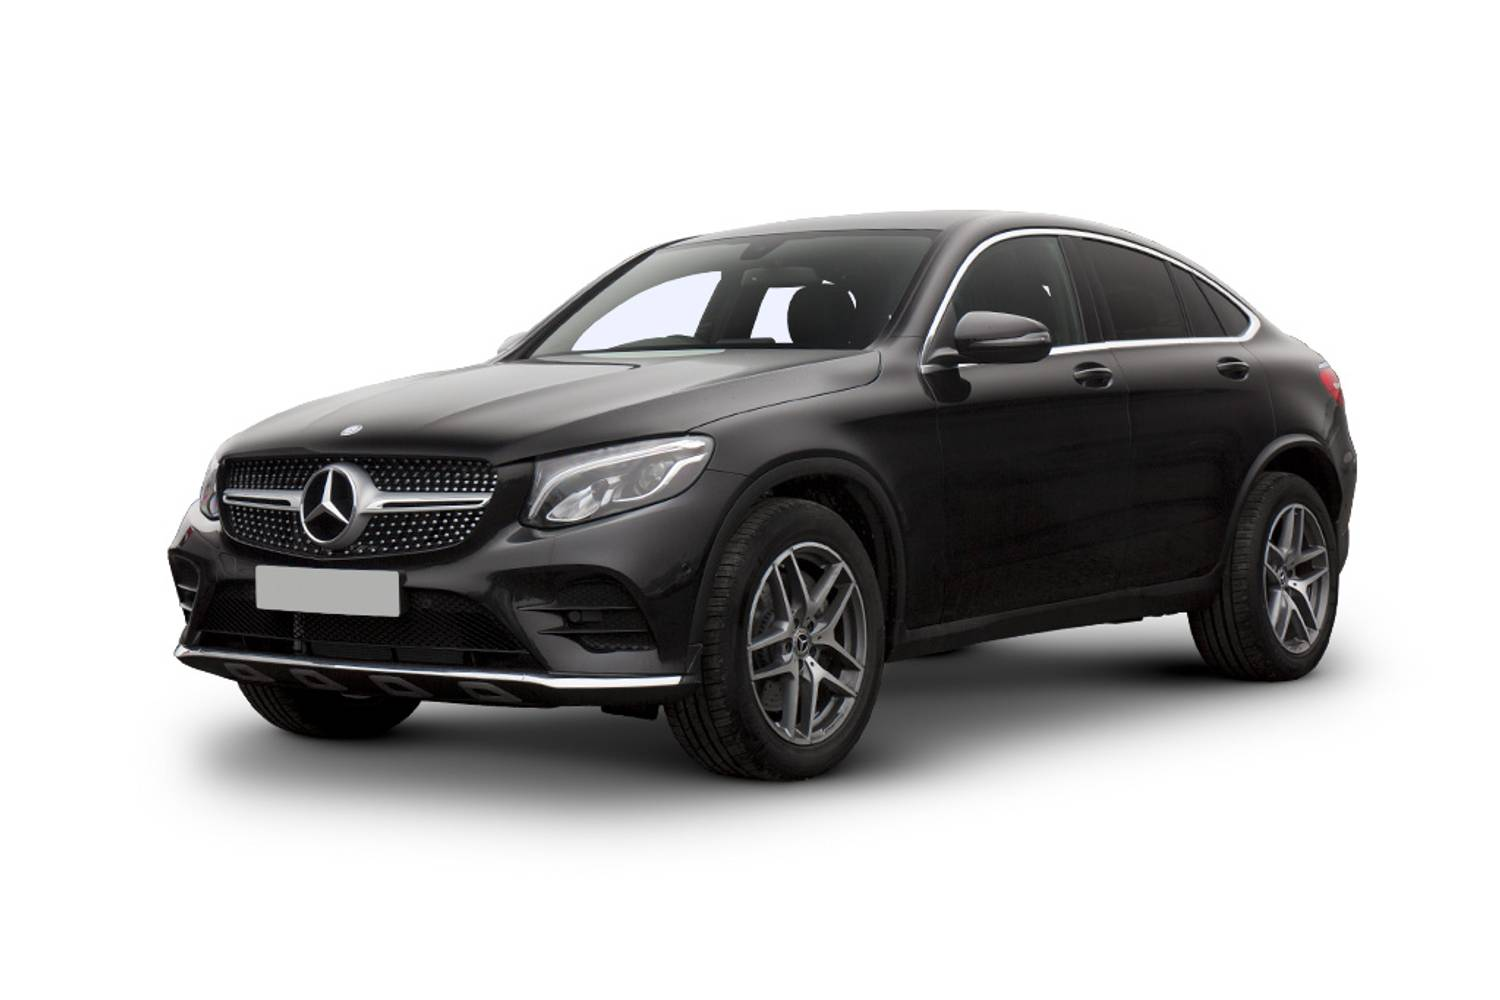 new mercedes benz glc diesel coupe glc 220d 4matic amg line 5 door 9g tronic 2016 for sale. Black Bedroom Furniture Sets. Home Design Ideas